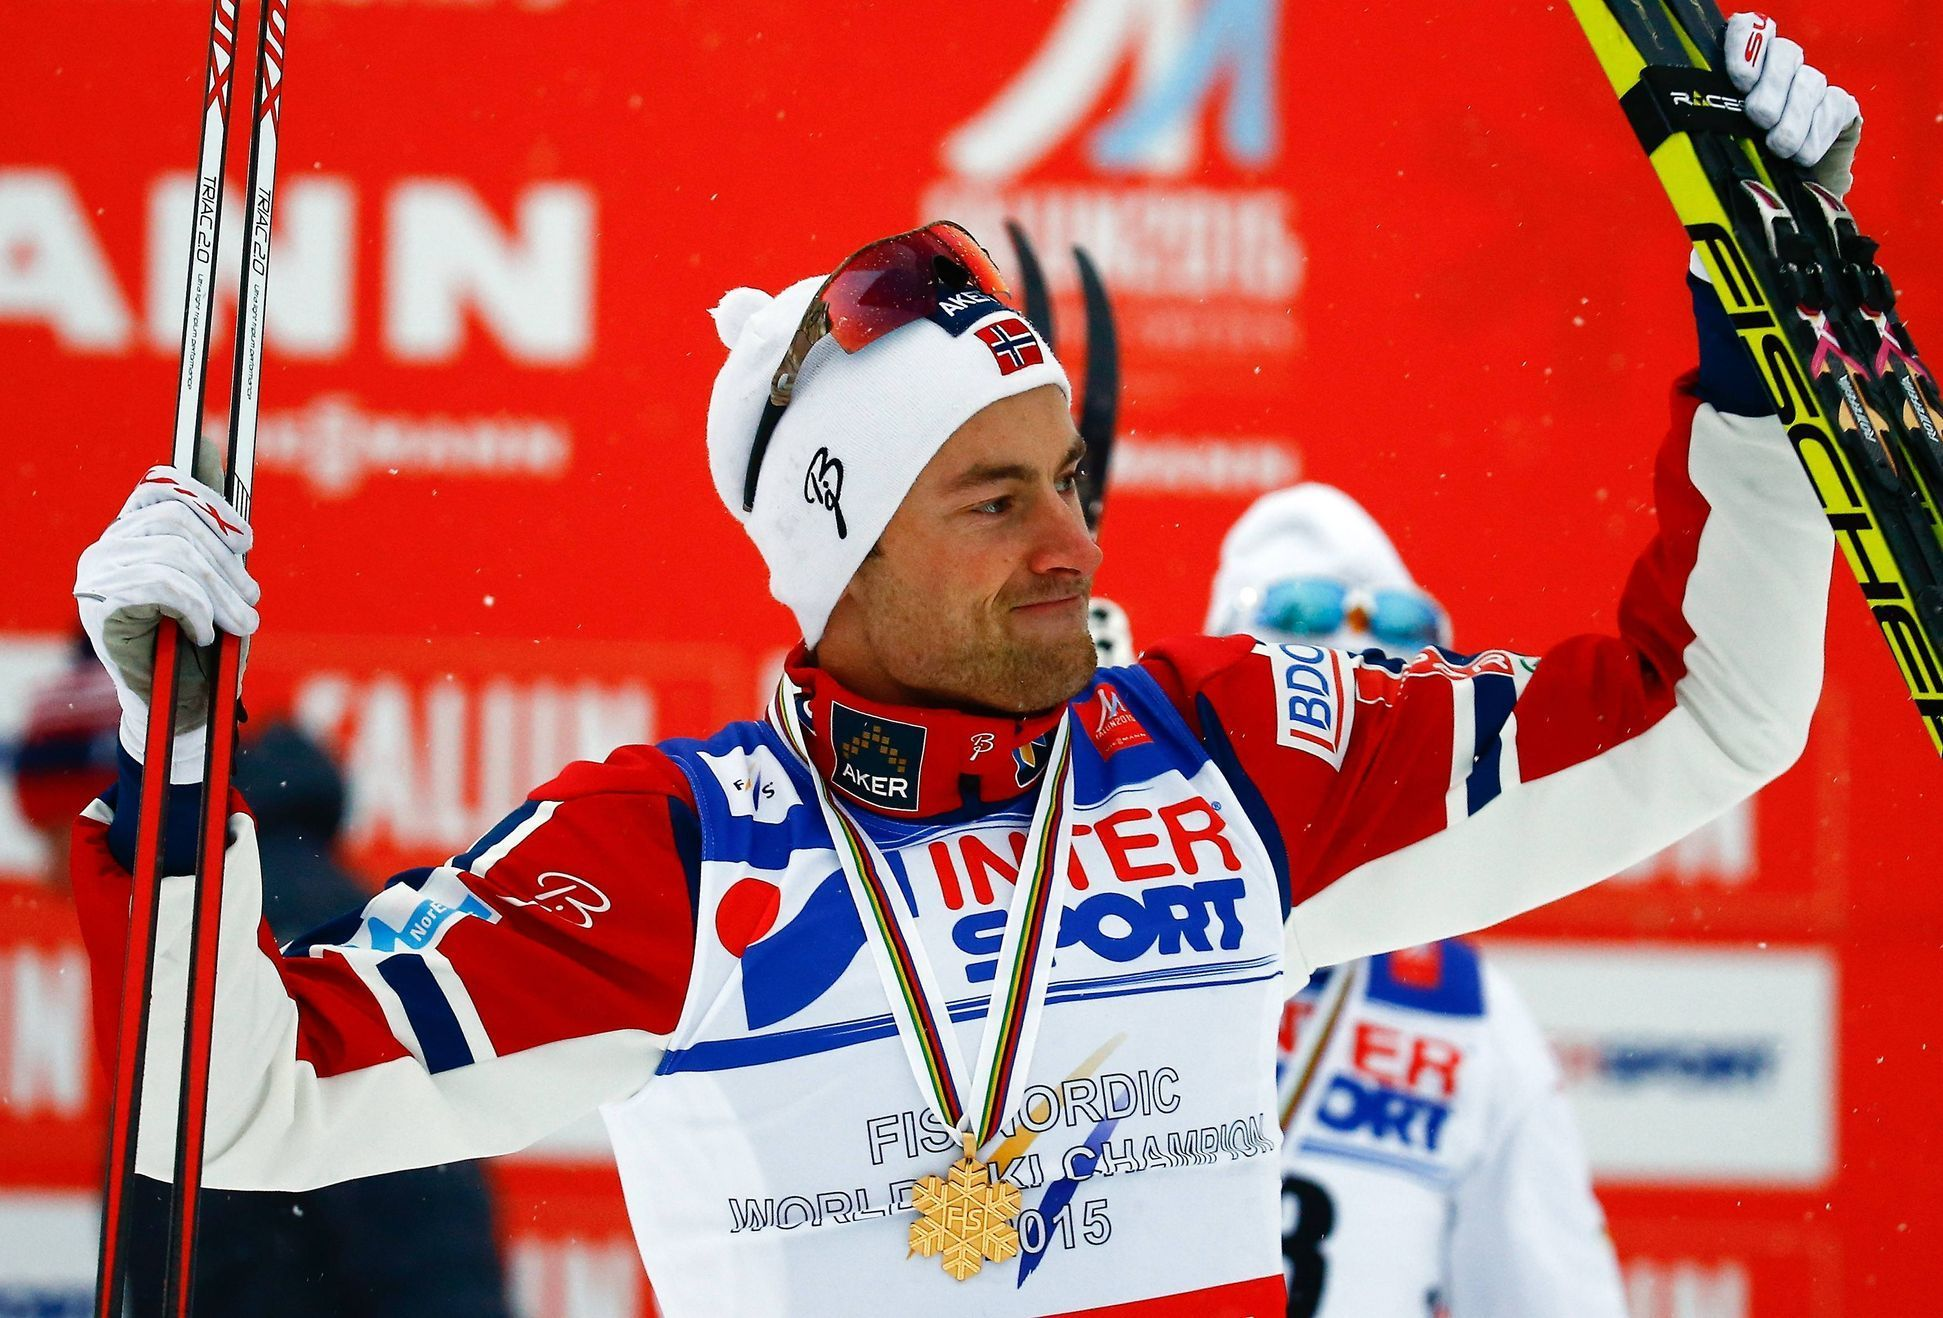 Norway's Northug celebrates winning the men's cross country 50 km mass start classic race at the Nordic World Ski Championships in Falun